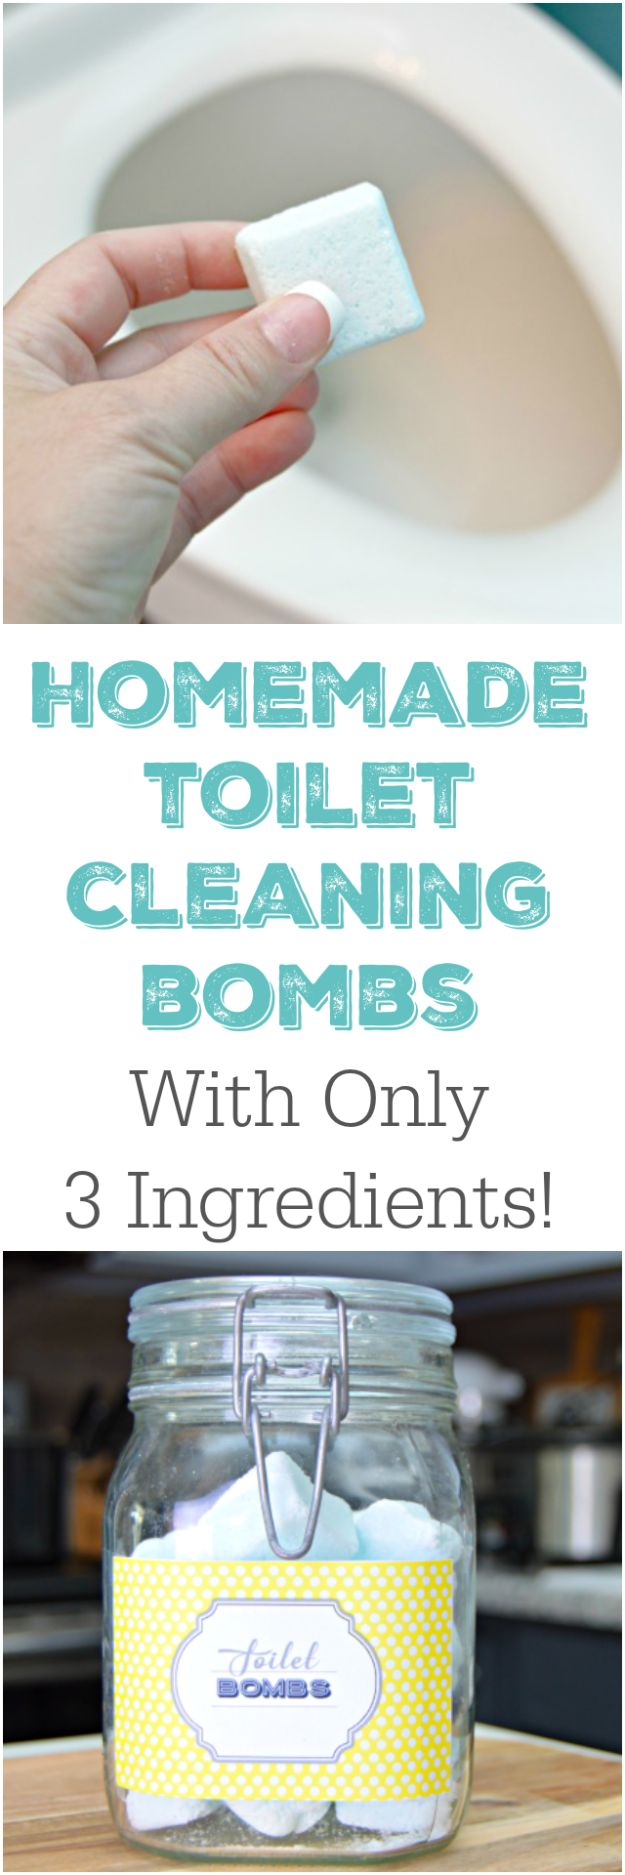 Cleaning Tips and Tricks - 3 Ingredient Homemade Toilet Cleaning Bombs - Best Cleaning Hacks, Recipes and Tutorials - Daily Ways to Clean For Kitchen, For Couches, Bathroom, Bedroom, Laundry, Floors, Furniture, Windows, Cleaners and More for Cleaning Your Home- Quick Ideas for Lazy People - Cool Cleaning Hack Tutorial - DIY Projects and Crafts by DIY JOY http://diyjoy.com/diy-cleaning-tips-tricks